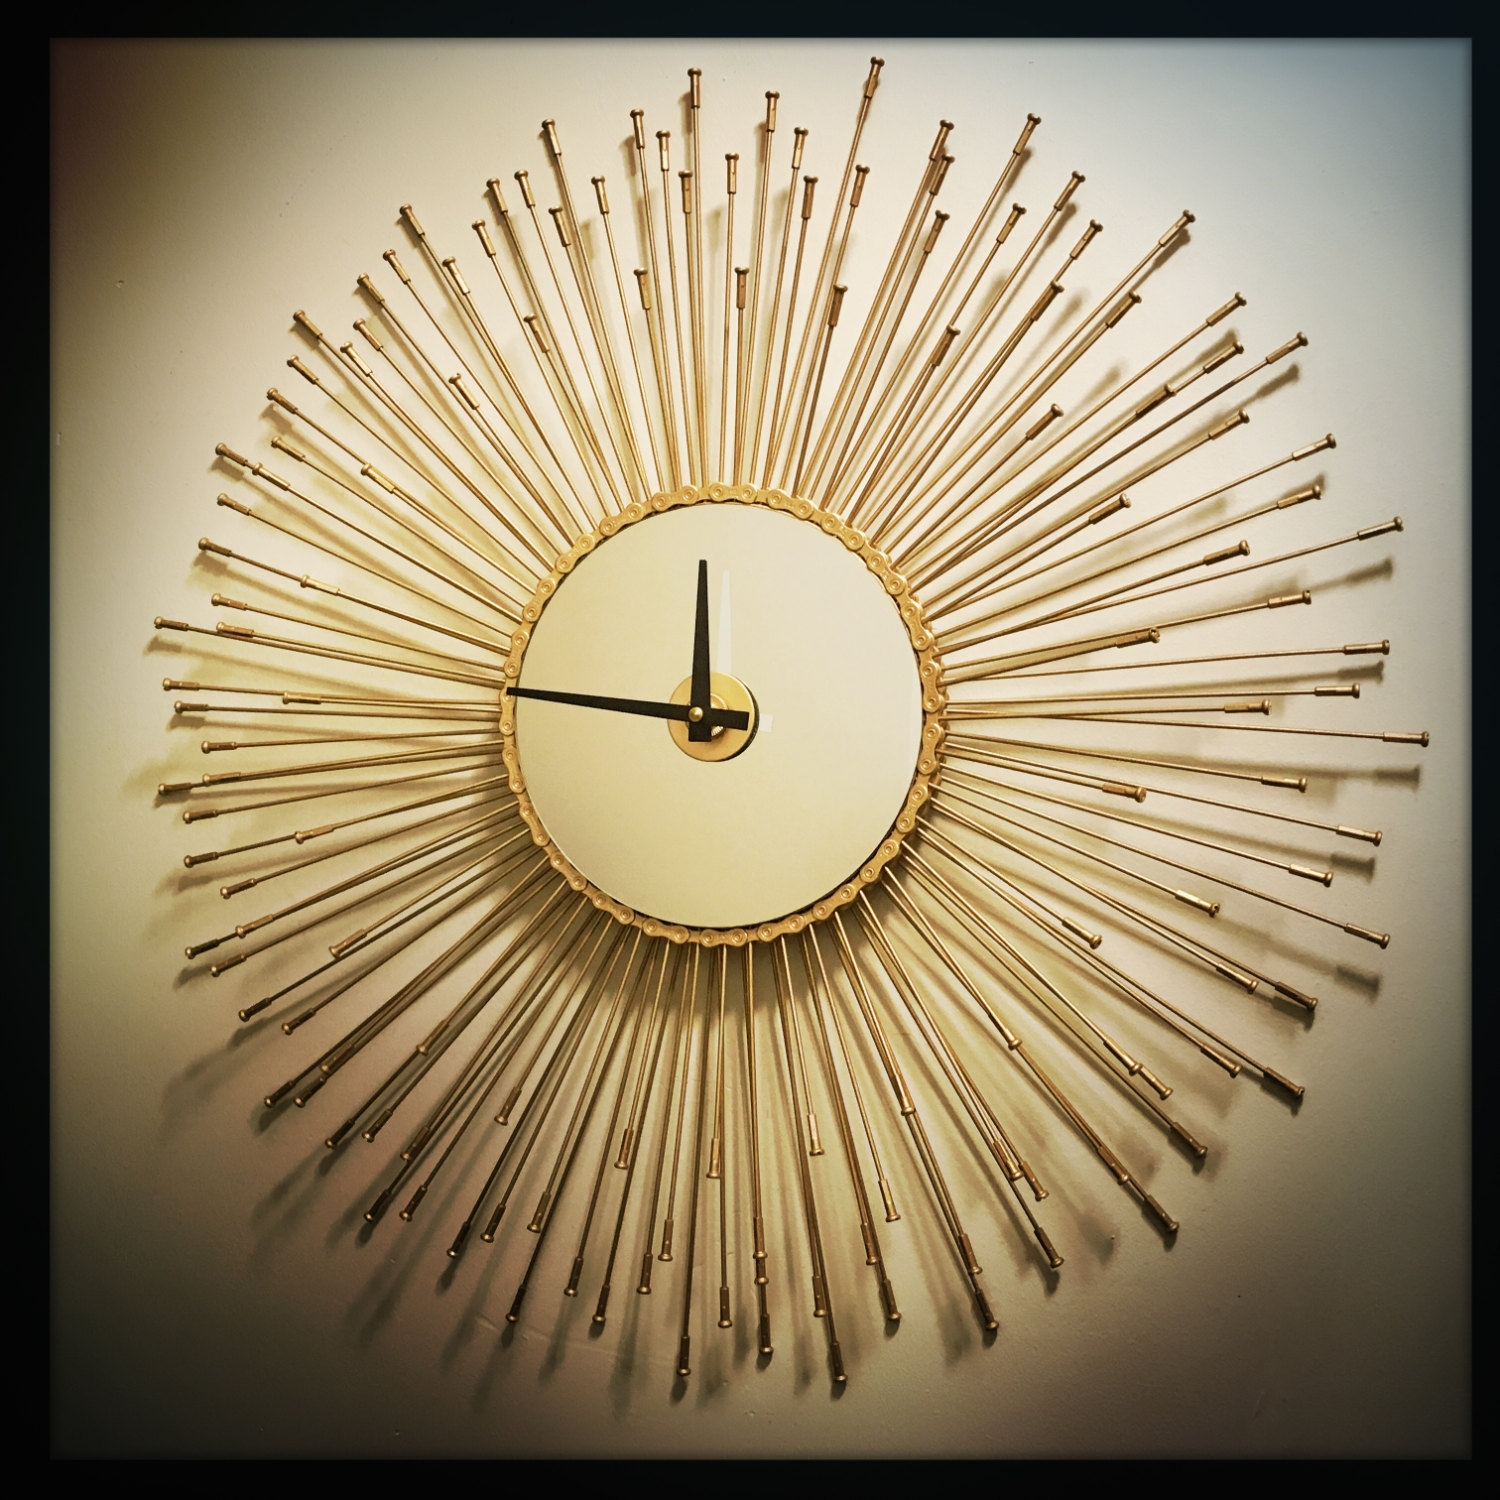 Starburst Clock Etsy Intended For Sun Mirrors For Sale (Image 10 of 15)